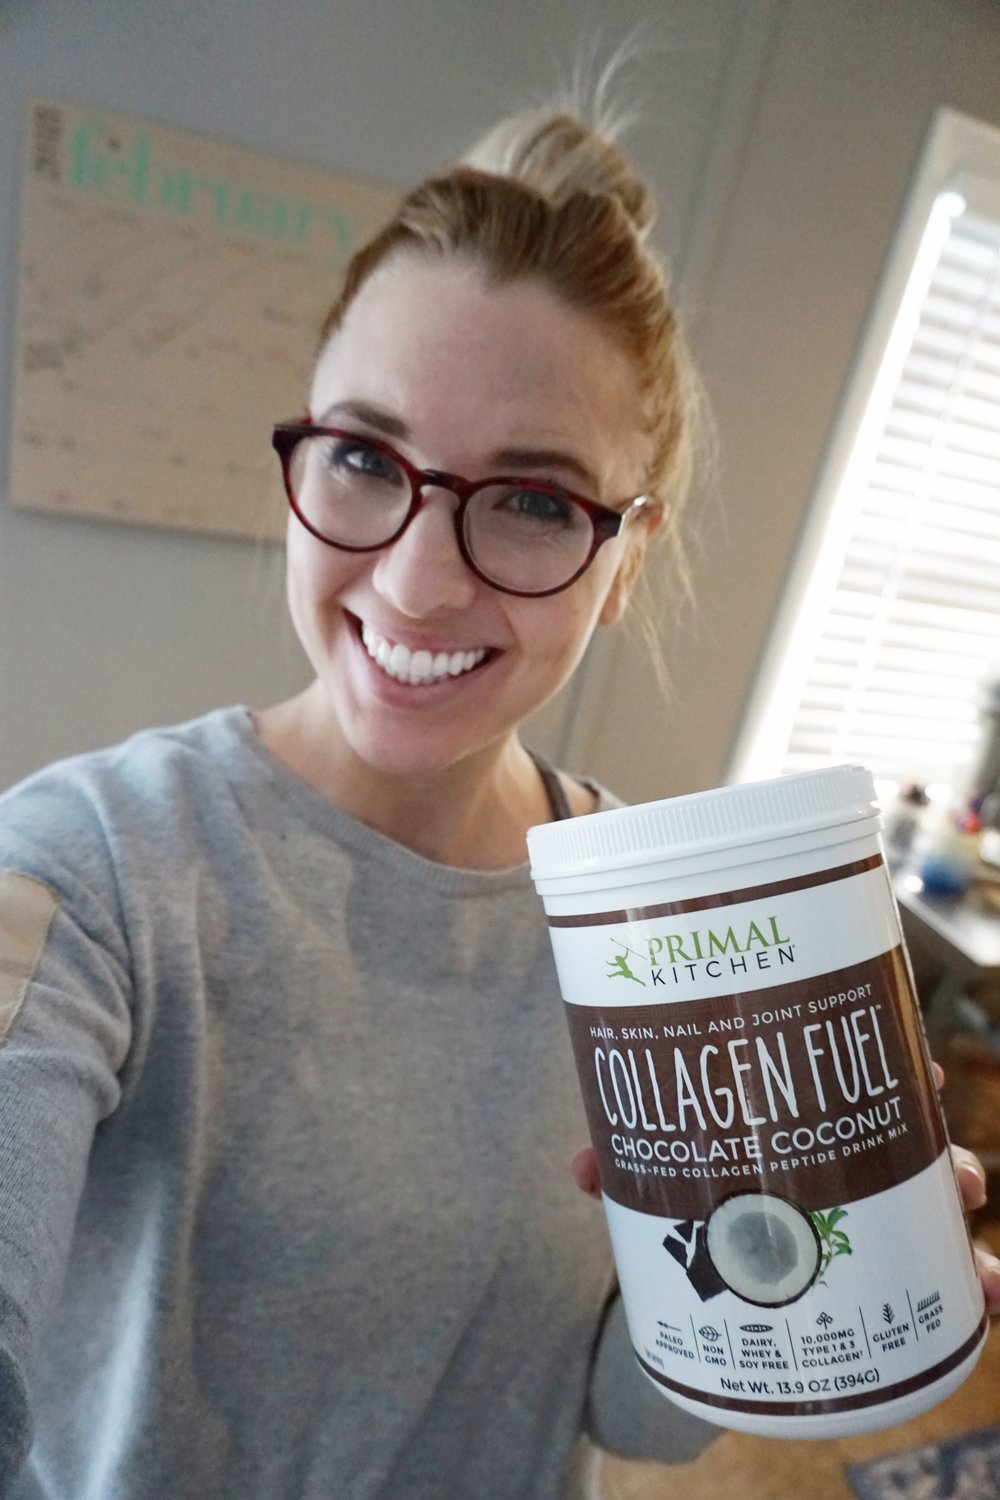 Primal Kitchen Collagen Fuel Chocolate Coconut